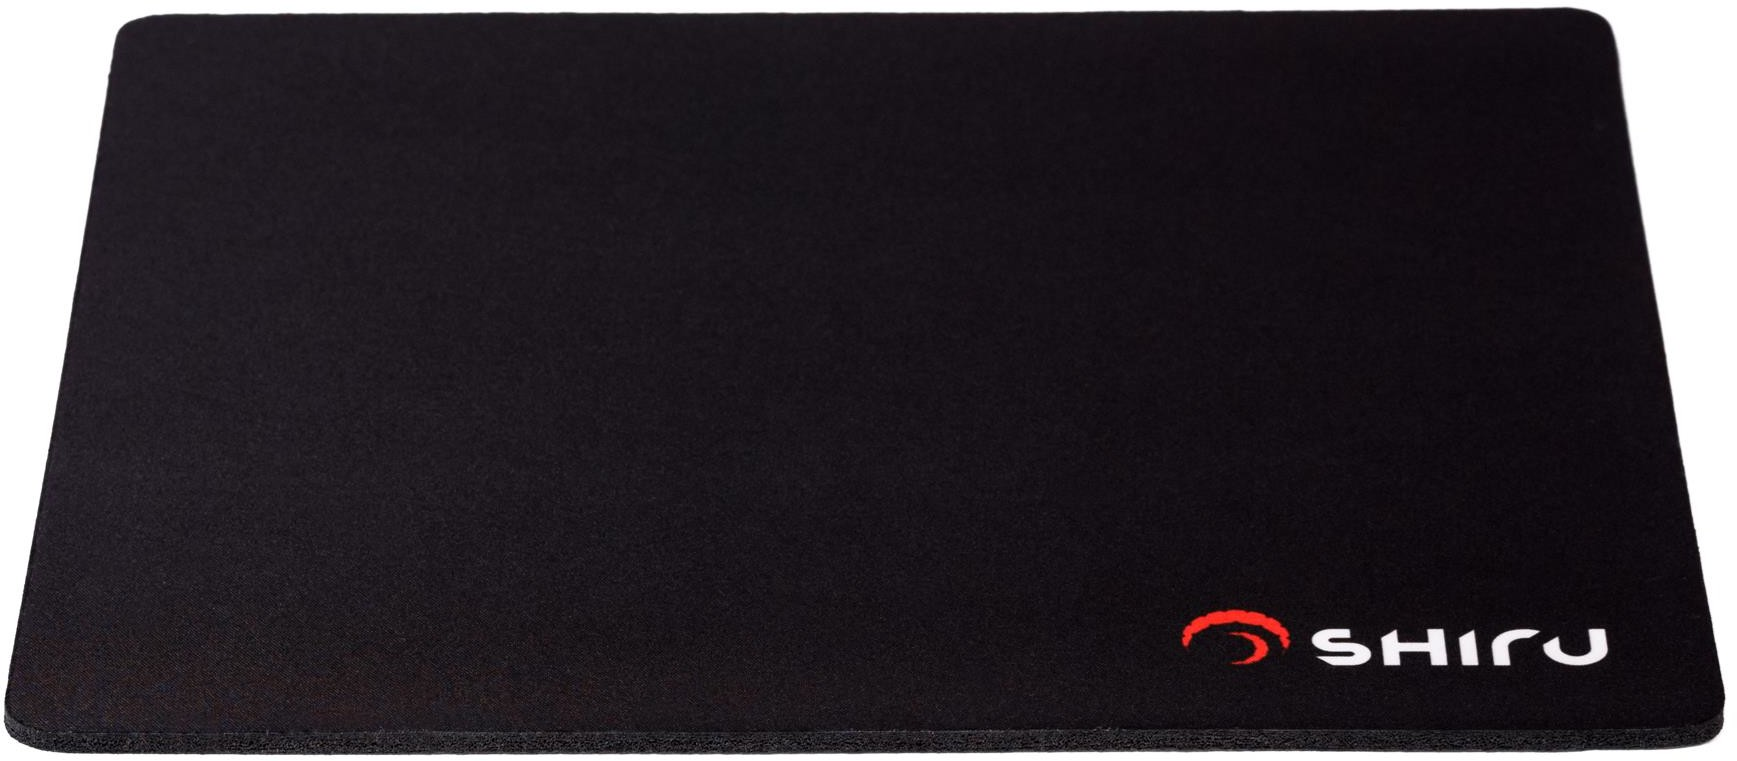 Gigabyte Gaming Mouse Pad